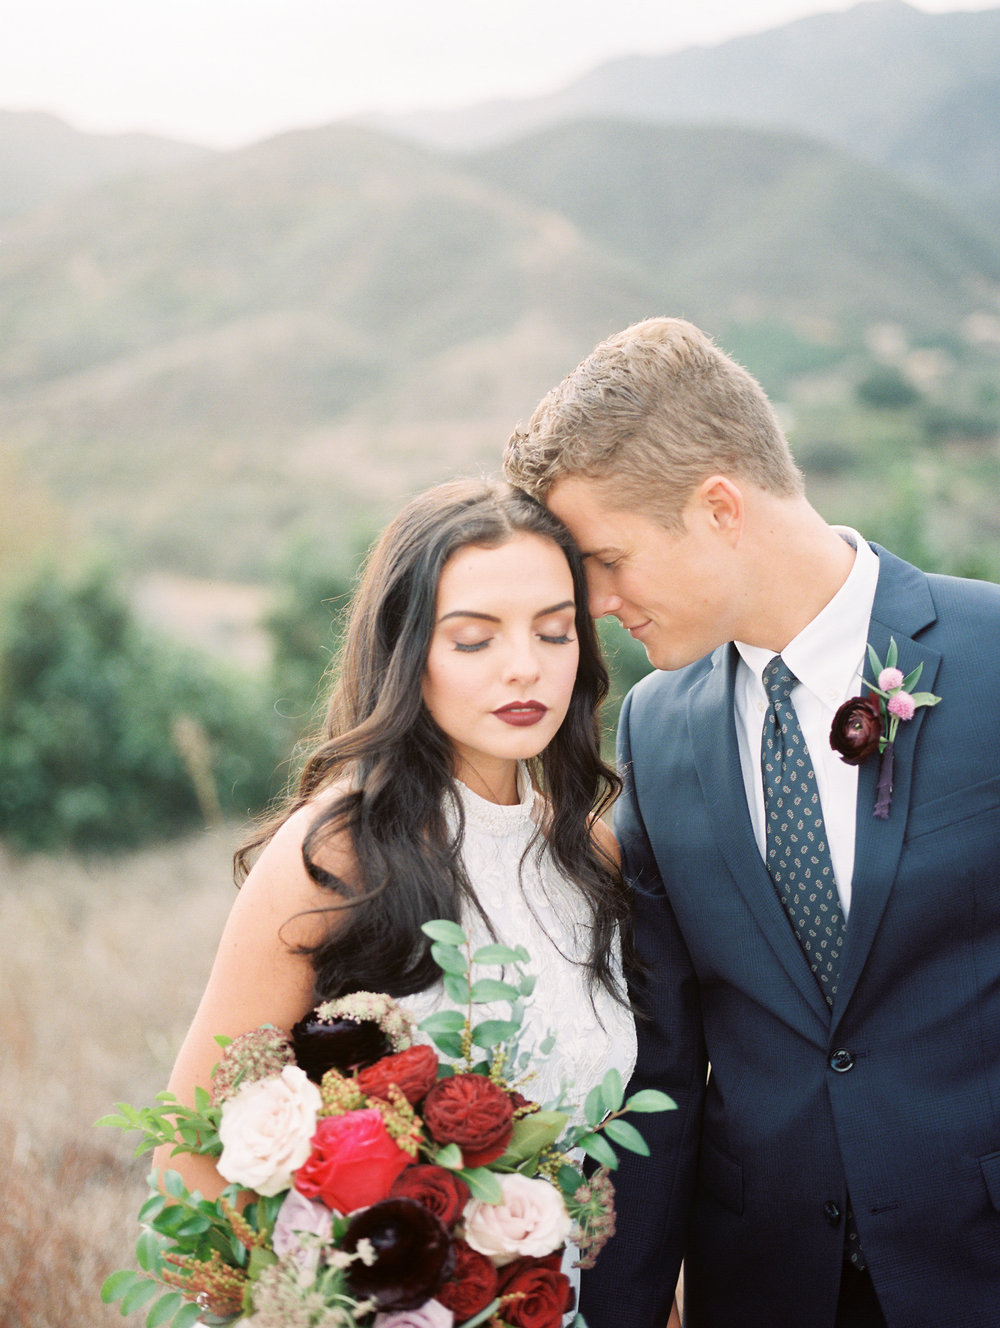 Las Vegas Wedding Planner shares a Valentine's Day Styled Shoot by http://elwynnandcass.com/